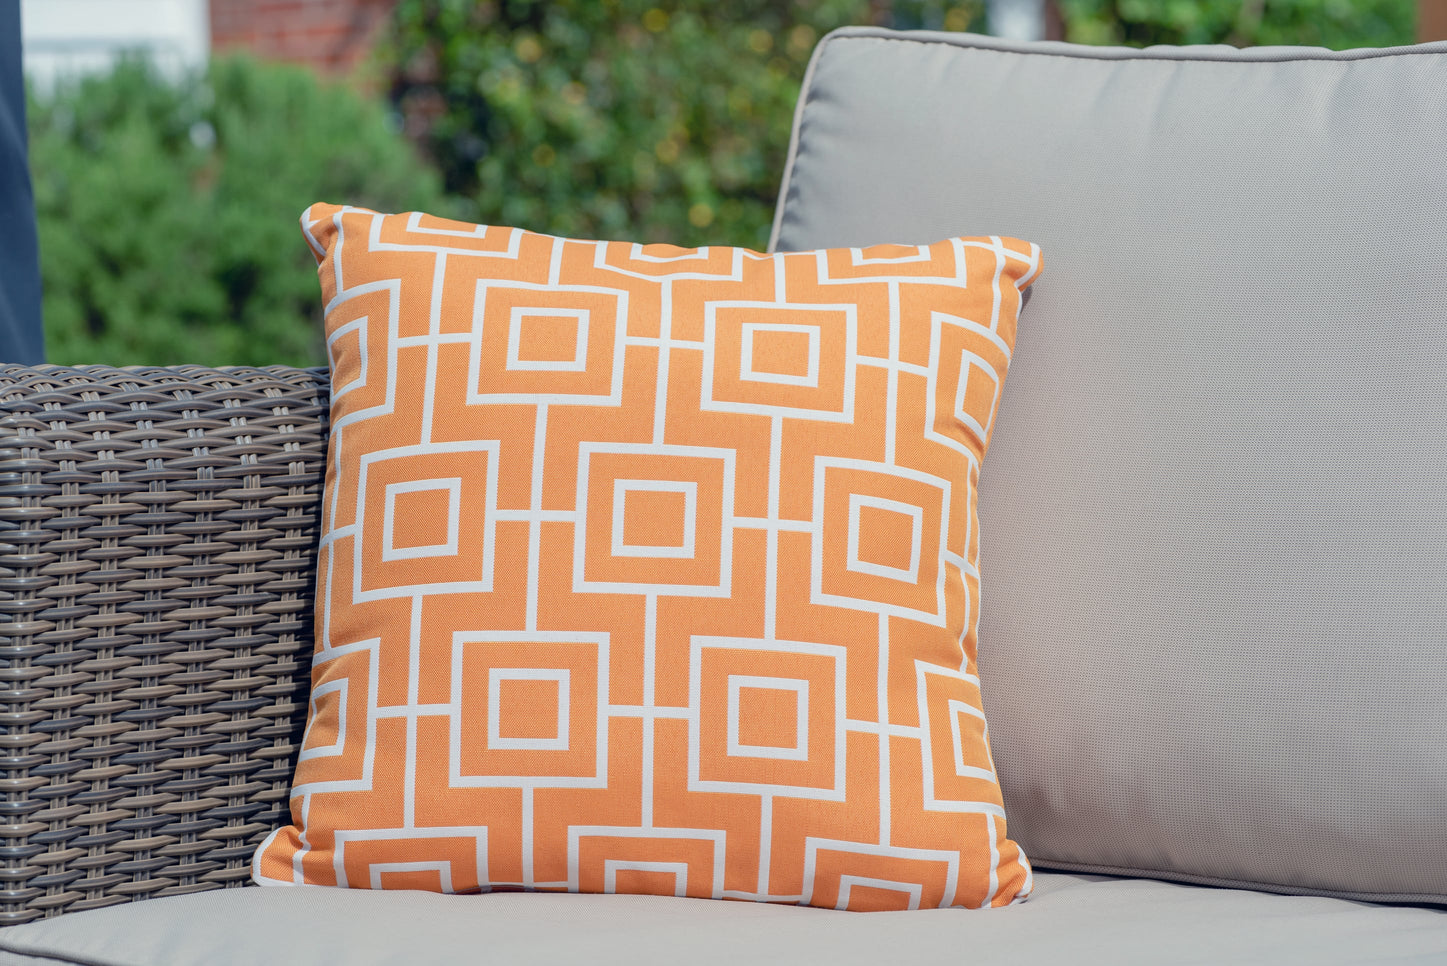 Armadillo sun waterproof cushion in orange aztec pattern